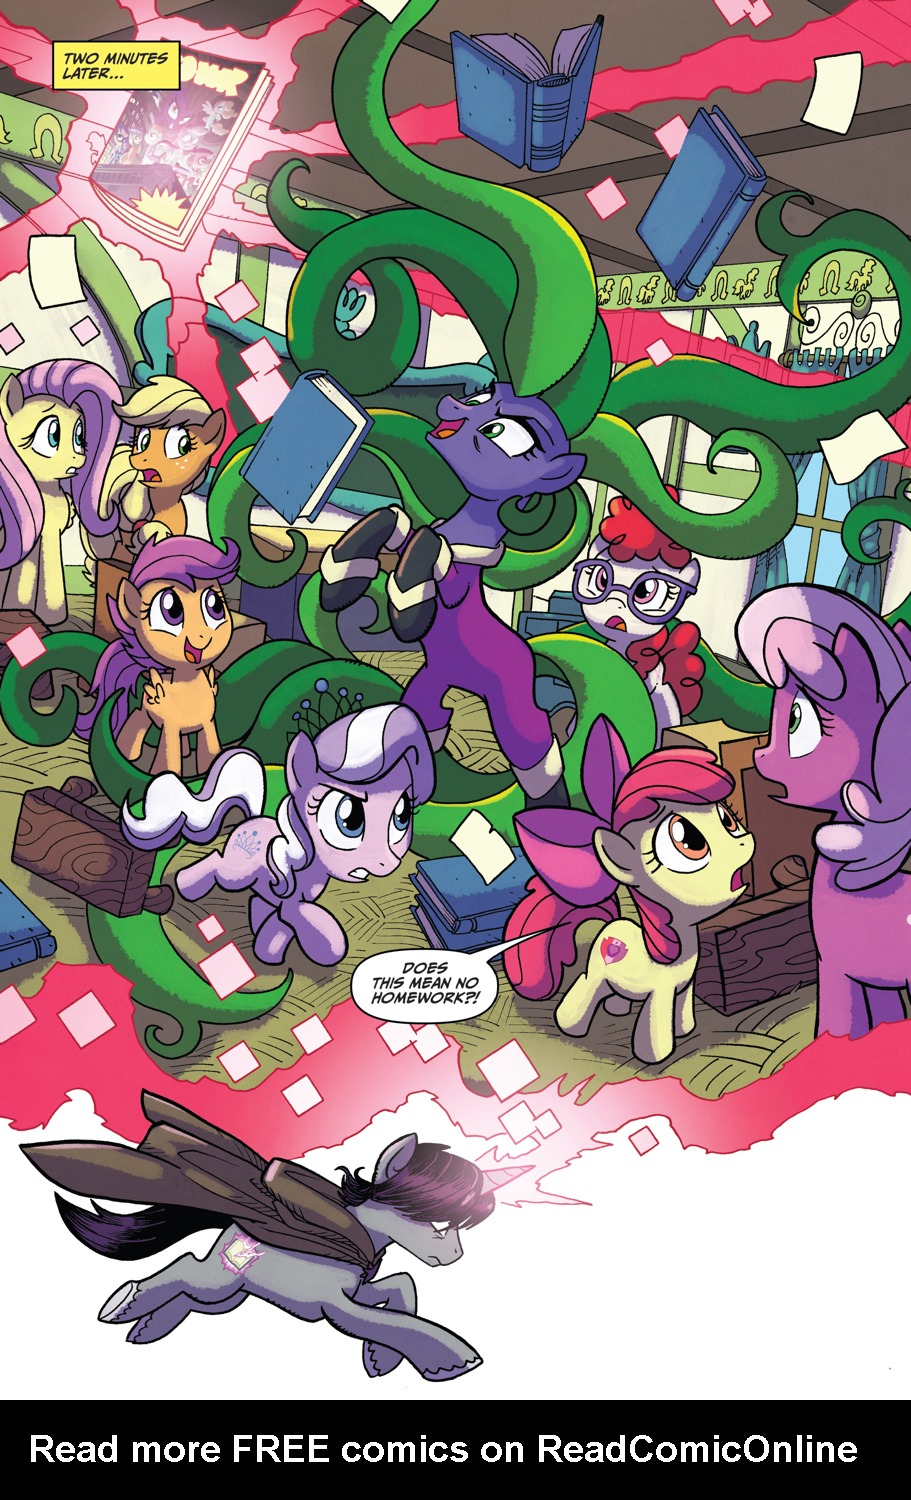 Read online My Little Pony: Friendship is Magic comic -  Issue #52 - 11